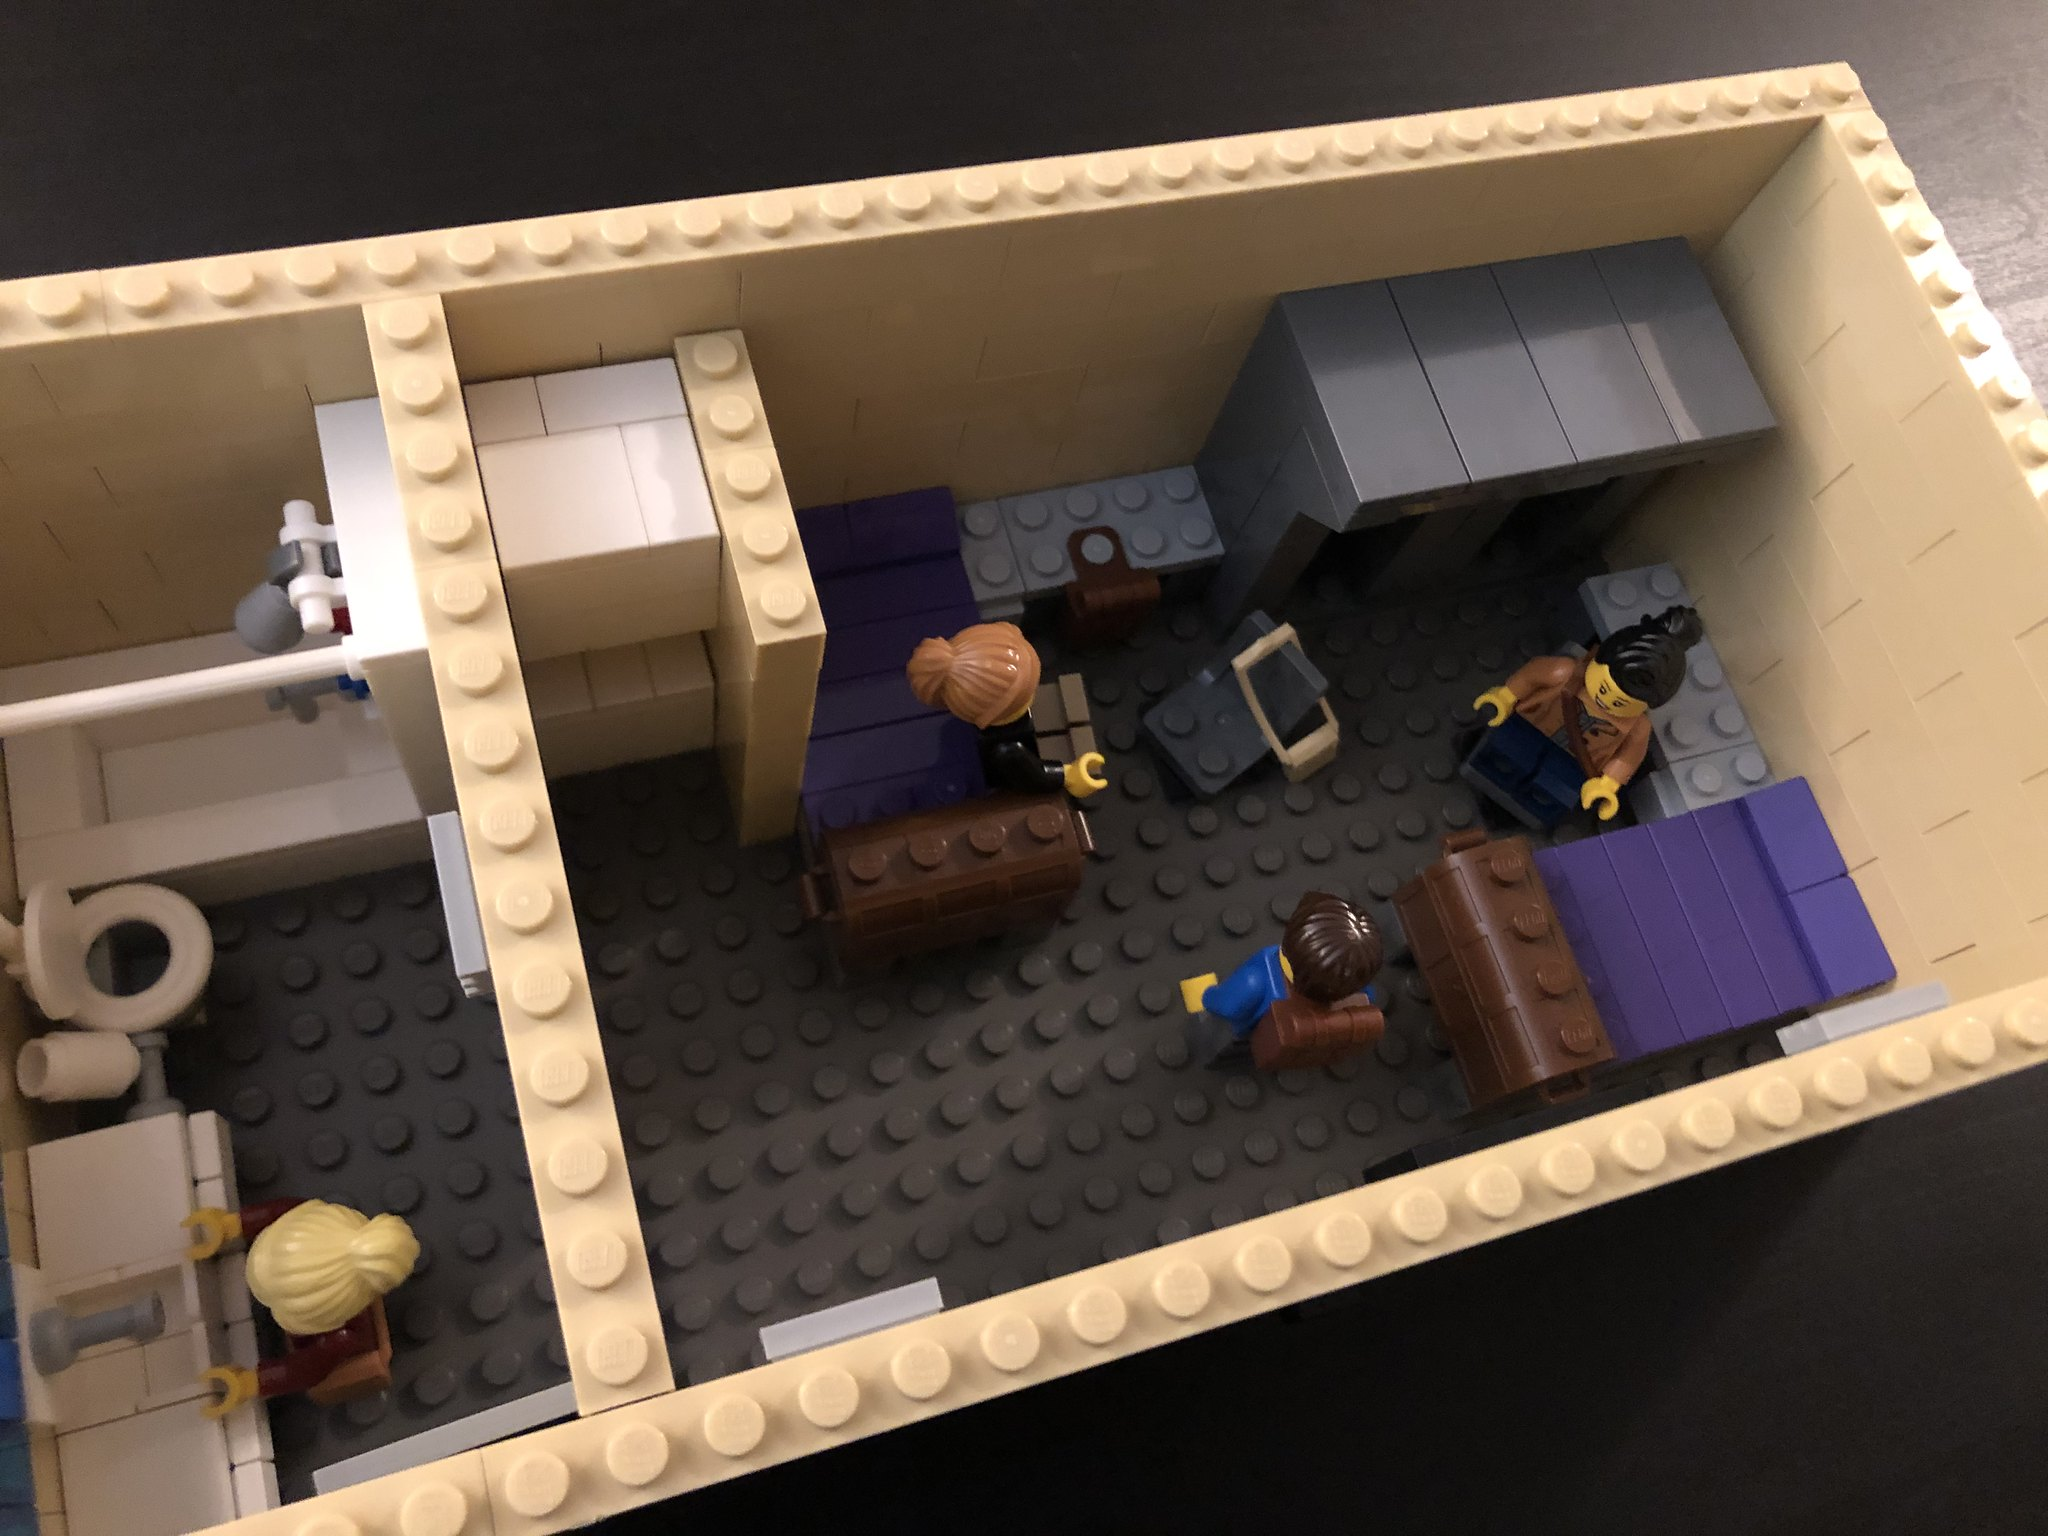 Dorm Room top facing minifigures